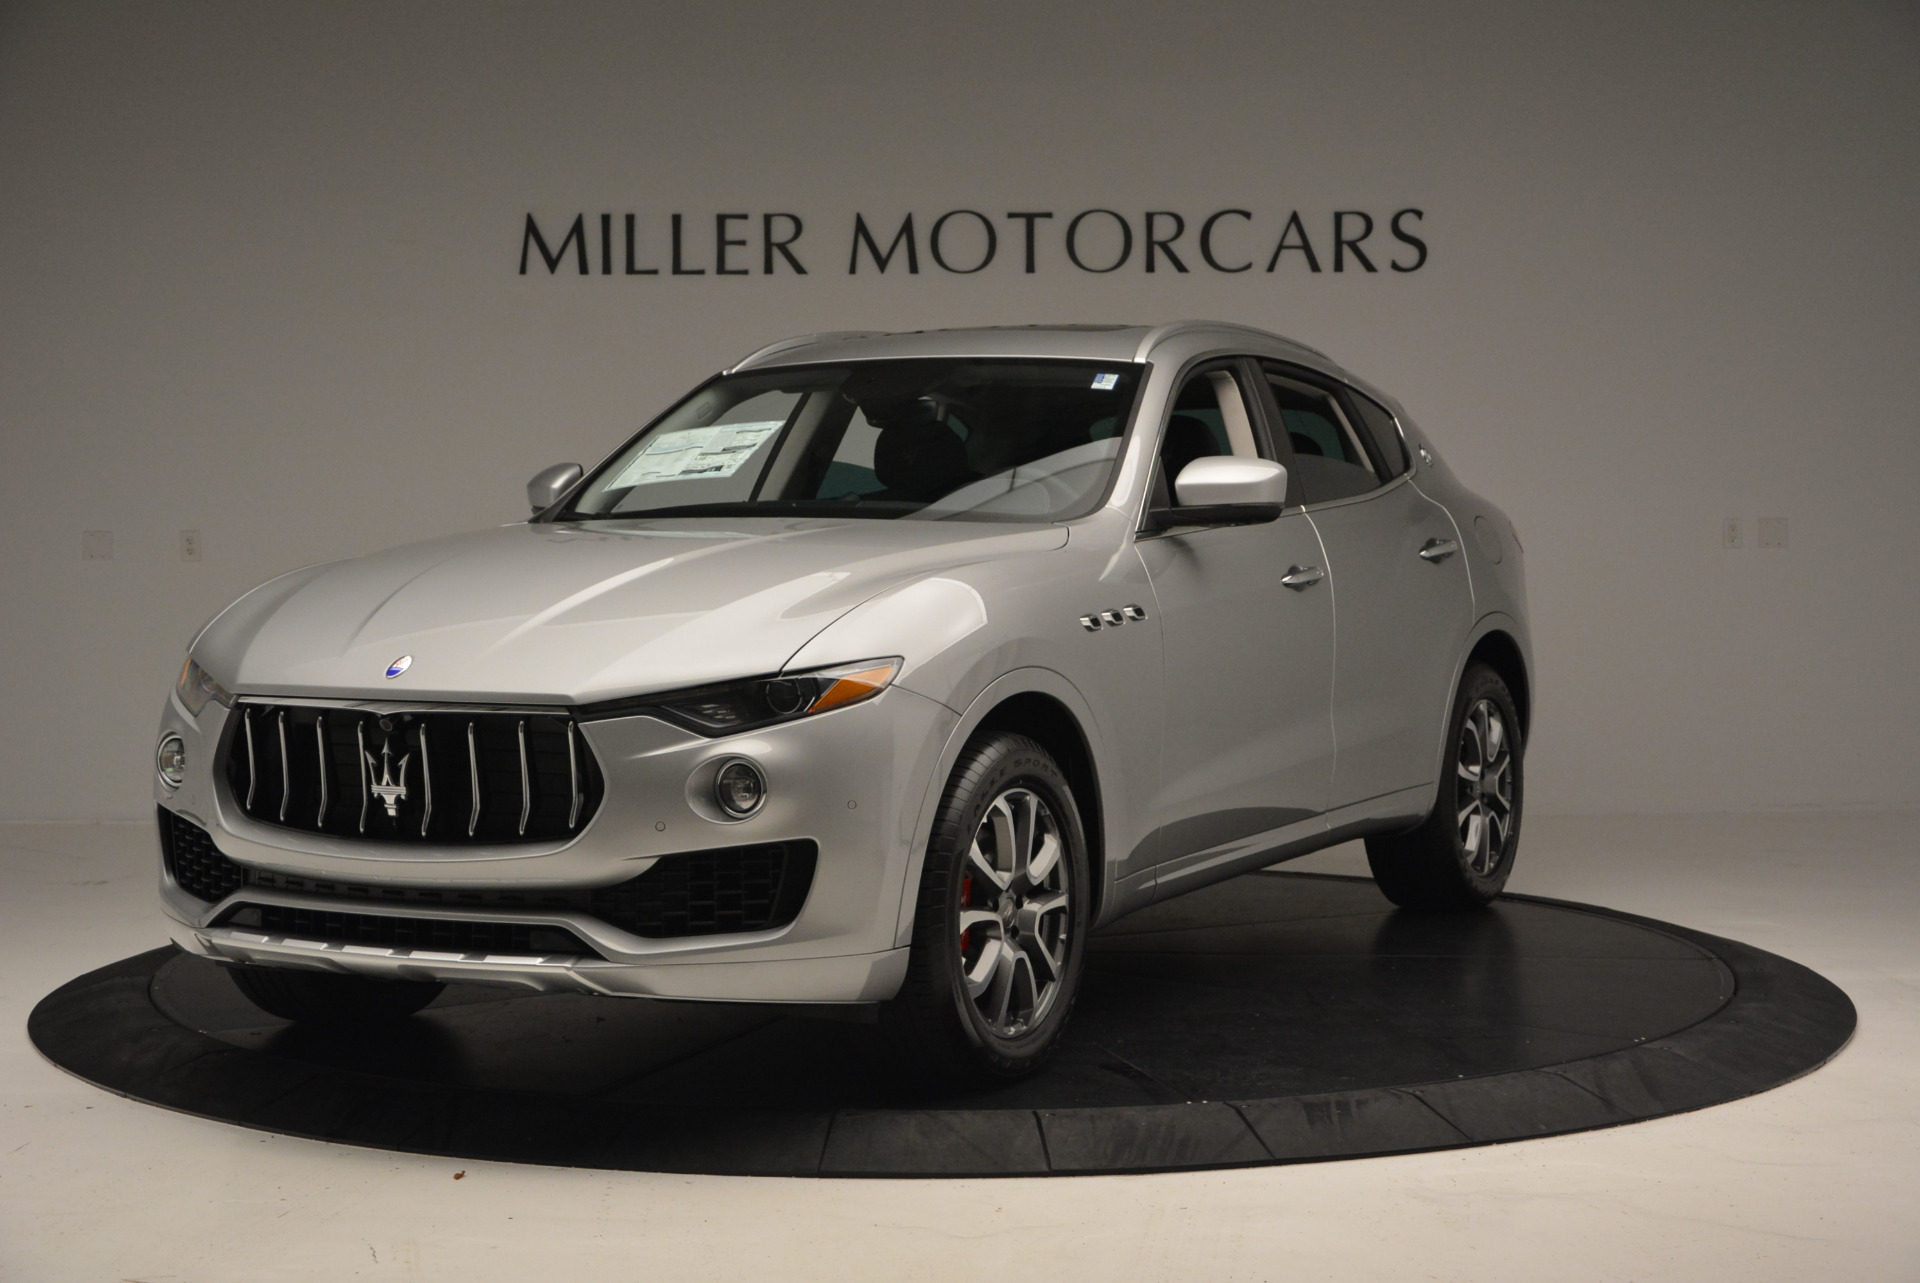 New 2017 Maserati Levante 350hp for sale Sold at Bugatti of Greenwich in Greenwich CT 06830 1